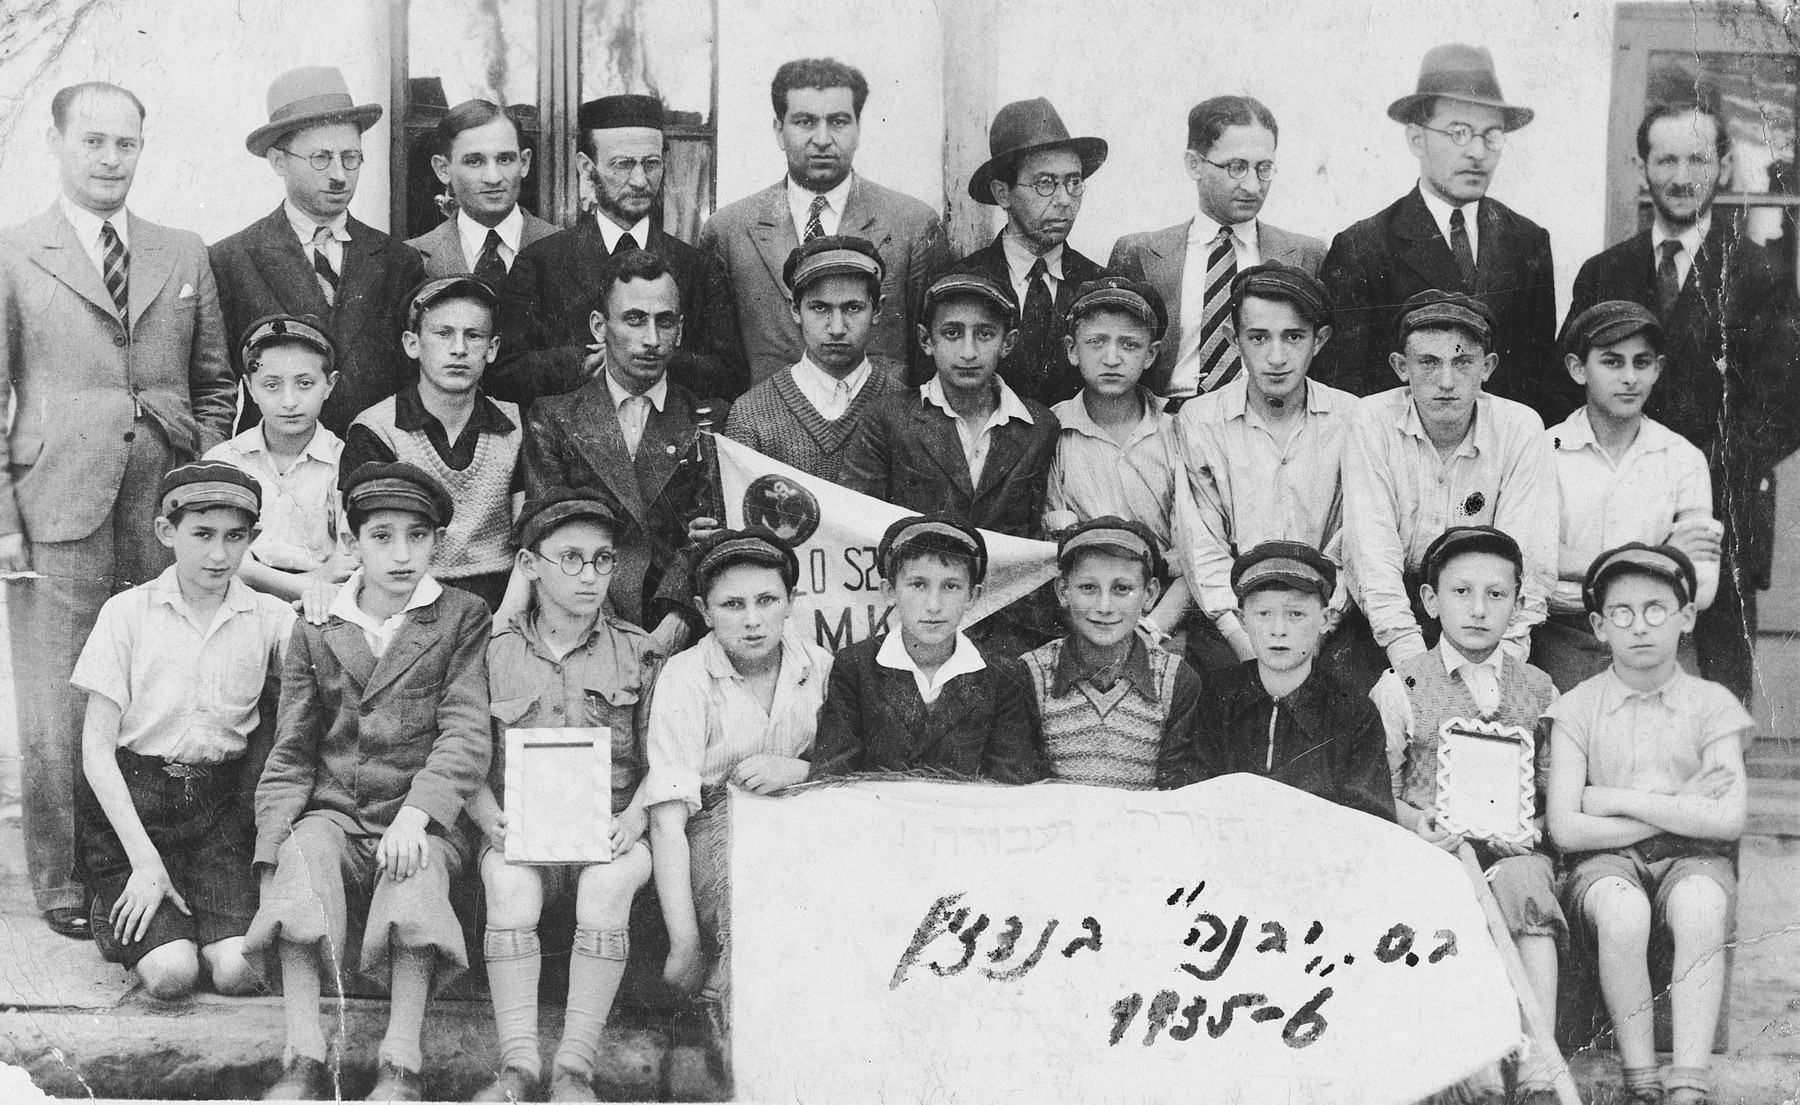 """Group portrait of faculty and students of the Yavne Hebrew elementary school in Bedzin, Poland.  Among those pictured is Moniek Szeps (front row, second from the right) holding a framed portrait of the Polish president.  The inscription on the back of the photo reads, """"As a memento to dear Moniek wishing that you will visit often your Mizrachi teacher, Euteniusz Pejsachowicz.""""  It is followed by a list of student signatures: H. Przymowski, M. Lustiger, Ksylek Hinigman, Moniek Radzynski, Olek Maka, H. Rechnic, M. Rechnic, Braun."""